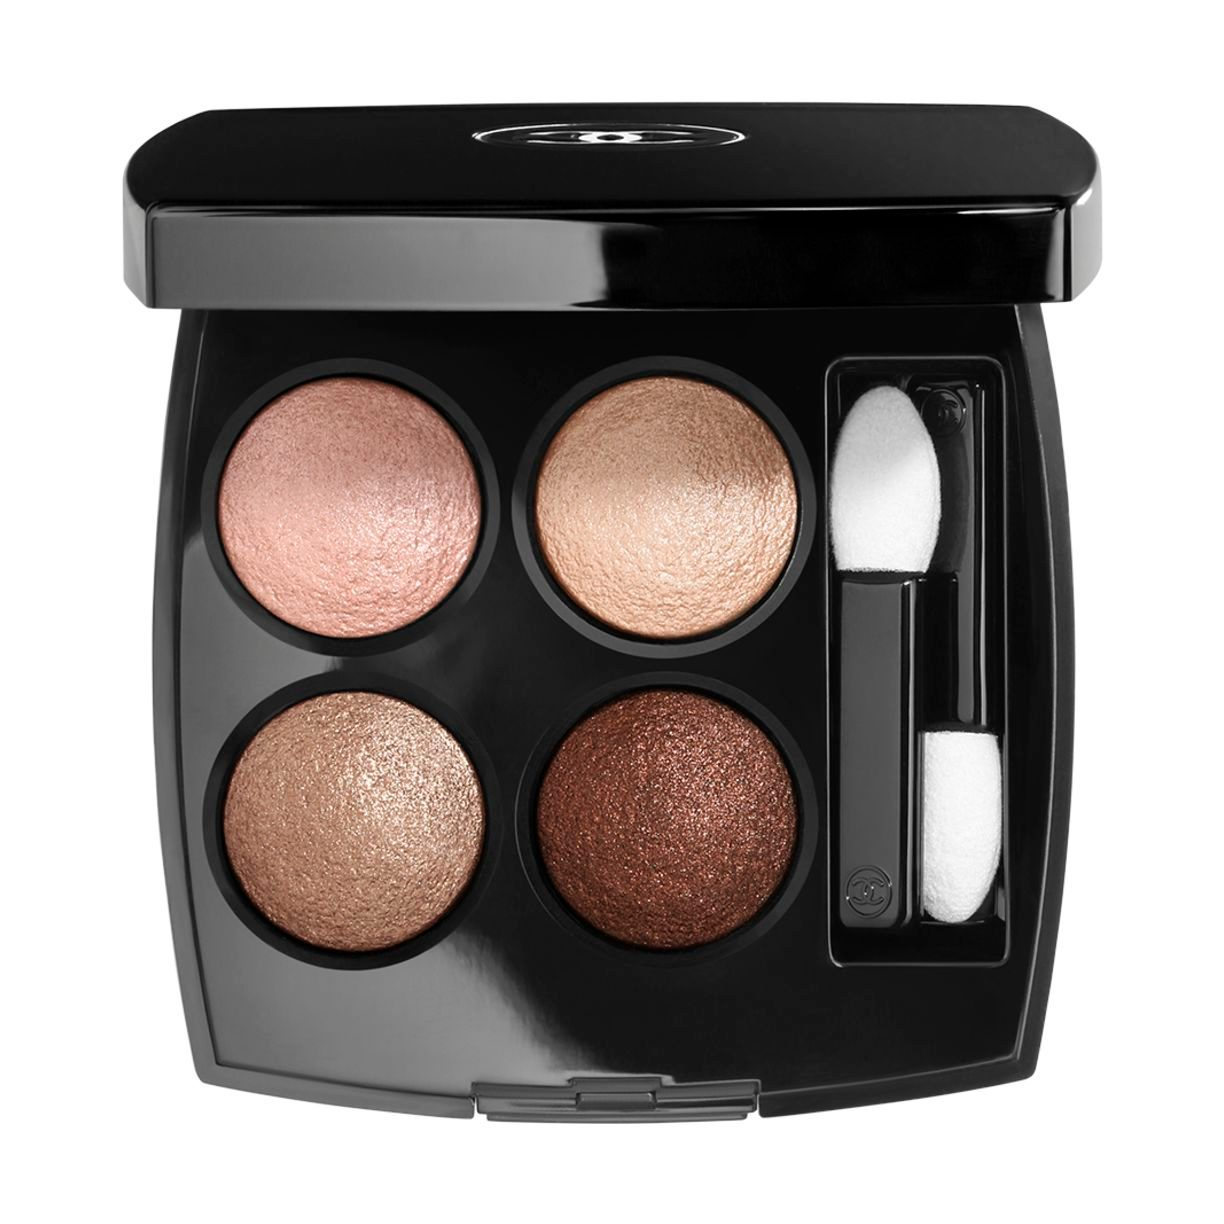 LES 4 OMBRES MULTI-EFFECT QUADRA EYESHADOW